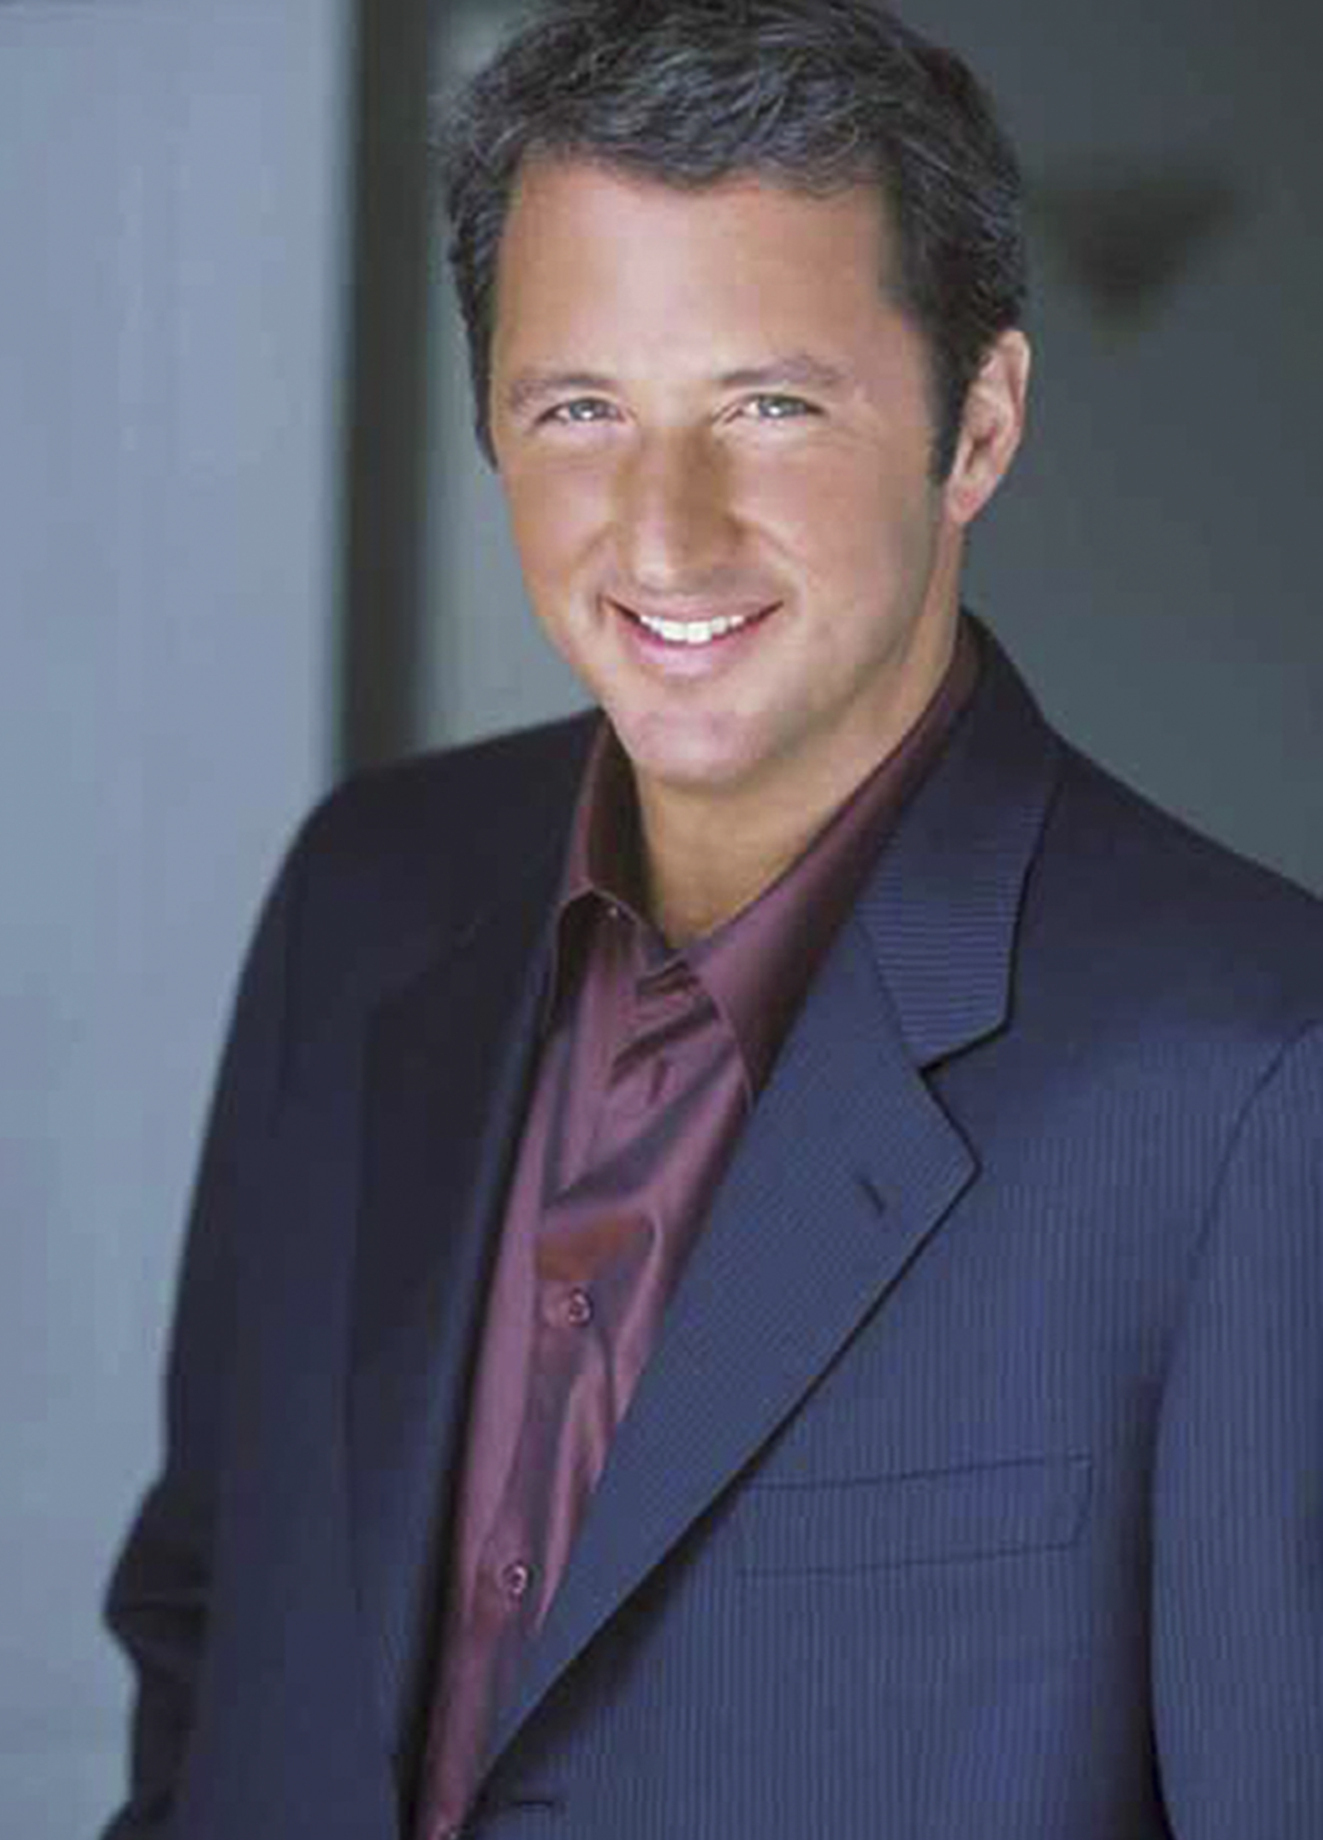 Book News Notorious Tv Pitchman Kevin Trudeau Gets 10